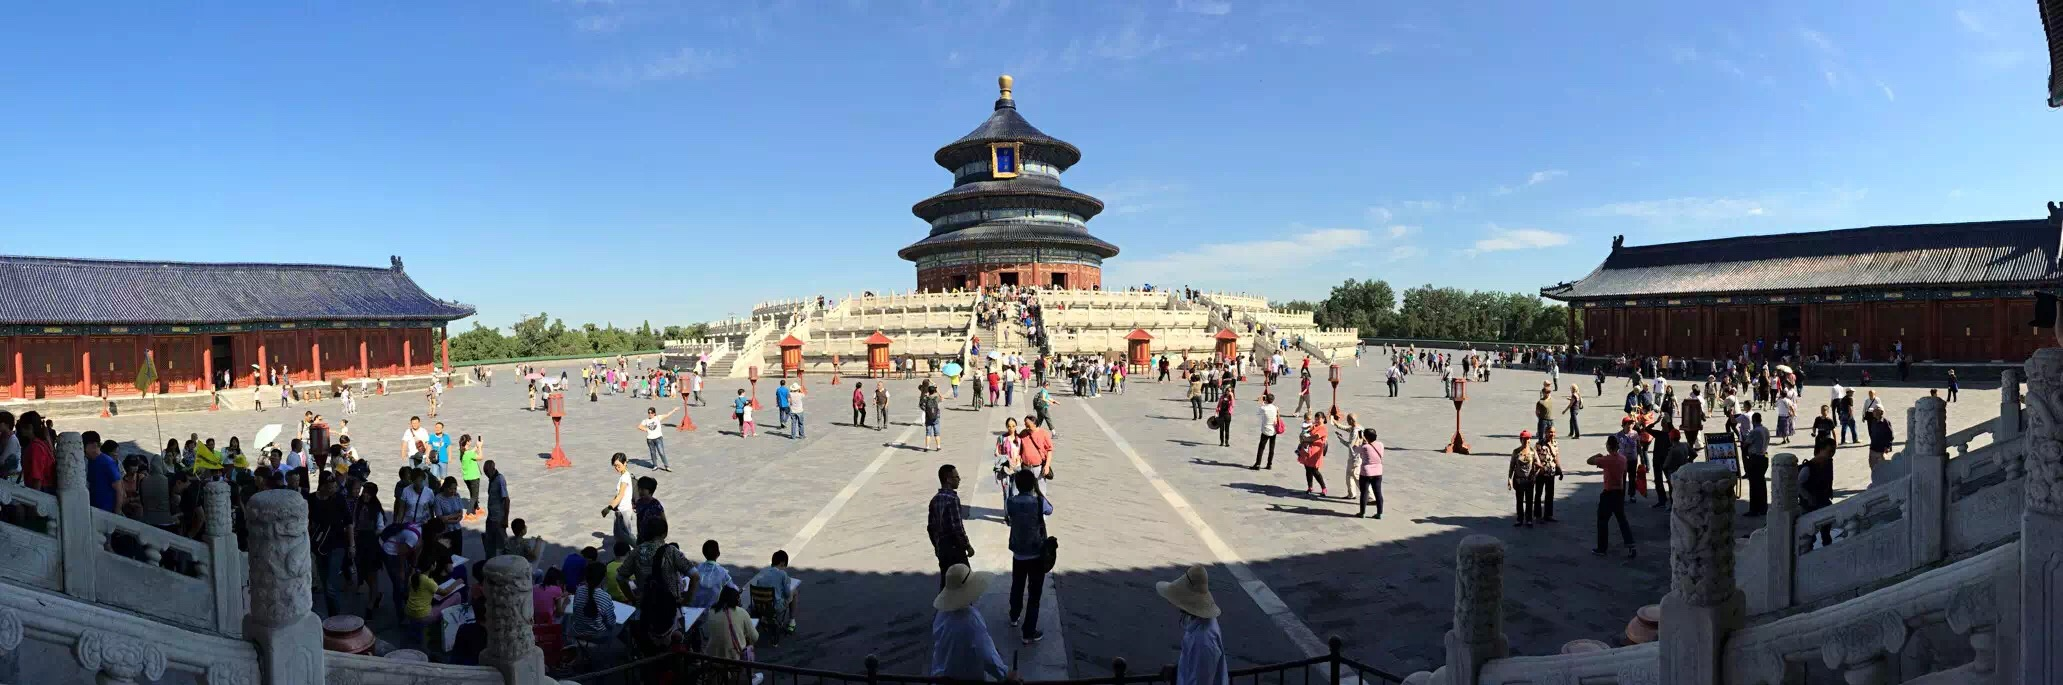 BeiJing The Temple of Heaven